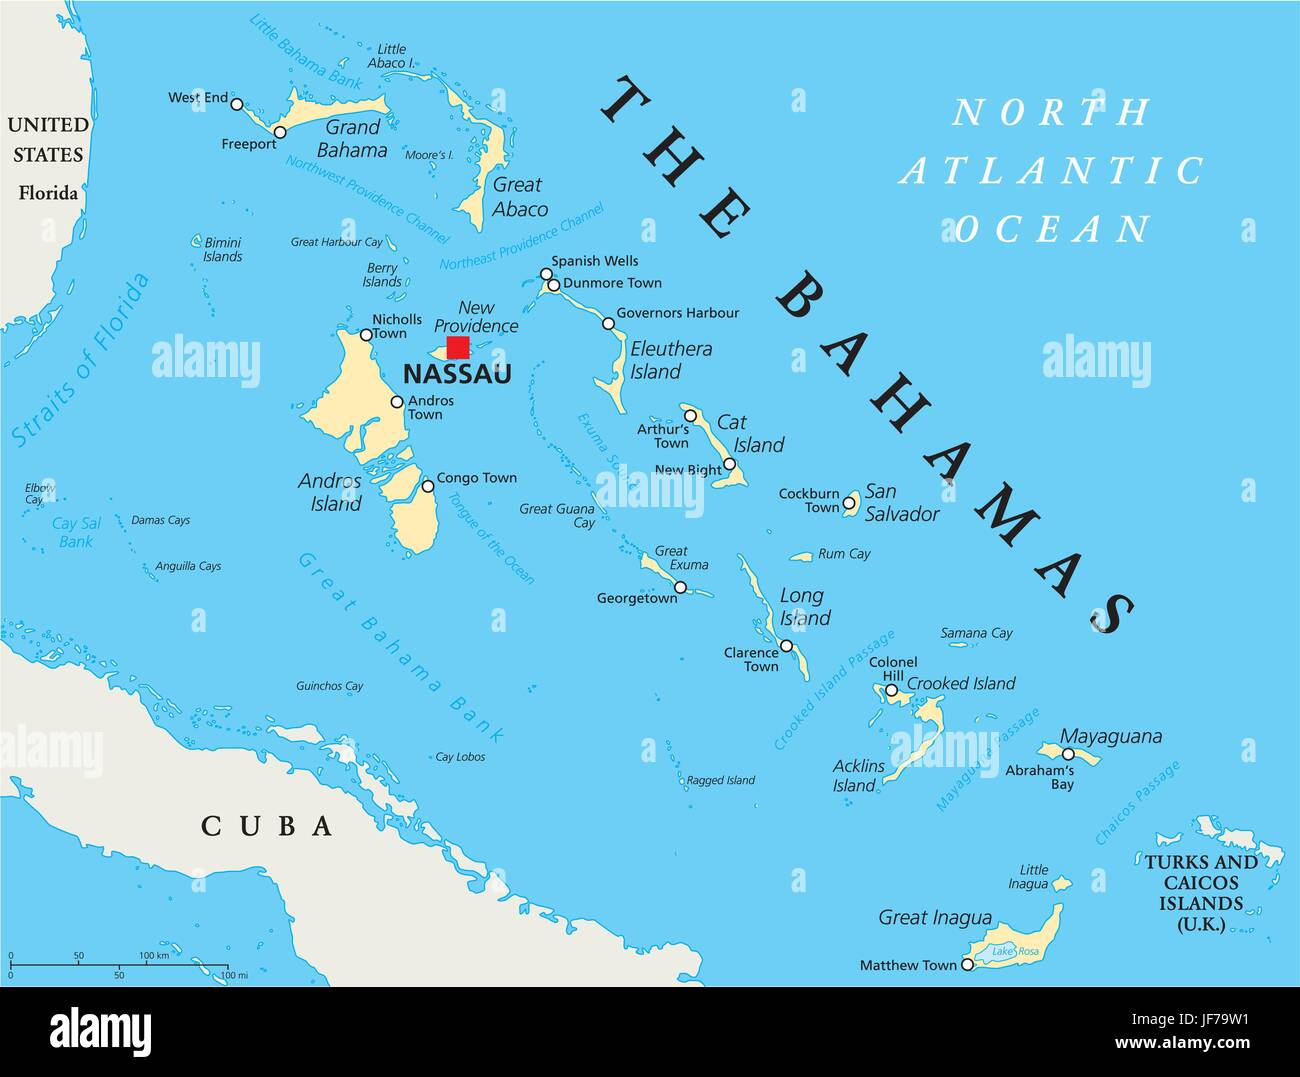 cruise destination island bahamas map atlas map of the world